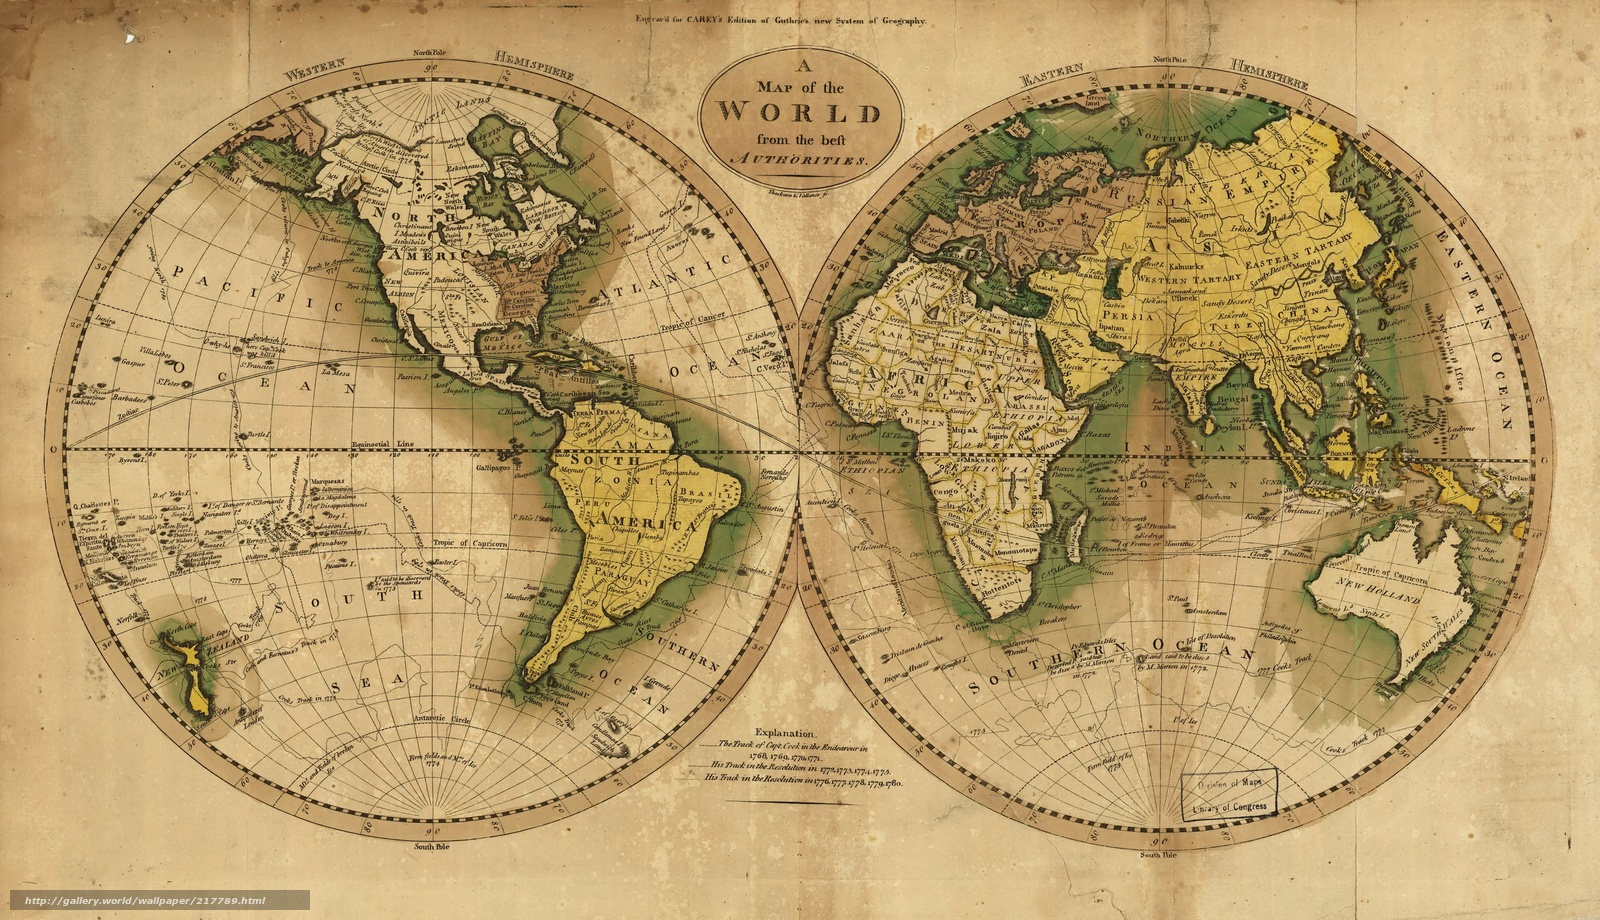 Old world map desktop wallpaper wallpapersafari download wallpaper map world old desktop wallpaper in the 1600x920 gumiabroncs Image collections